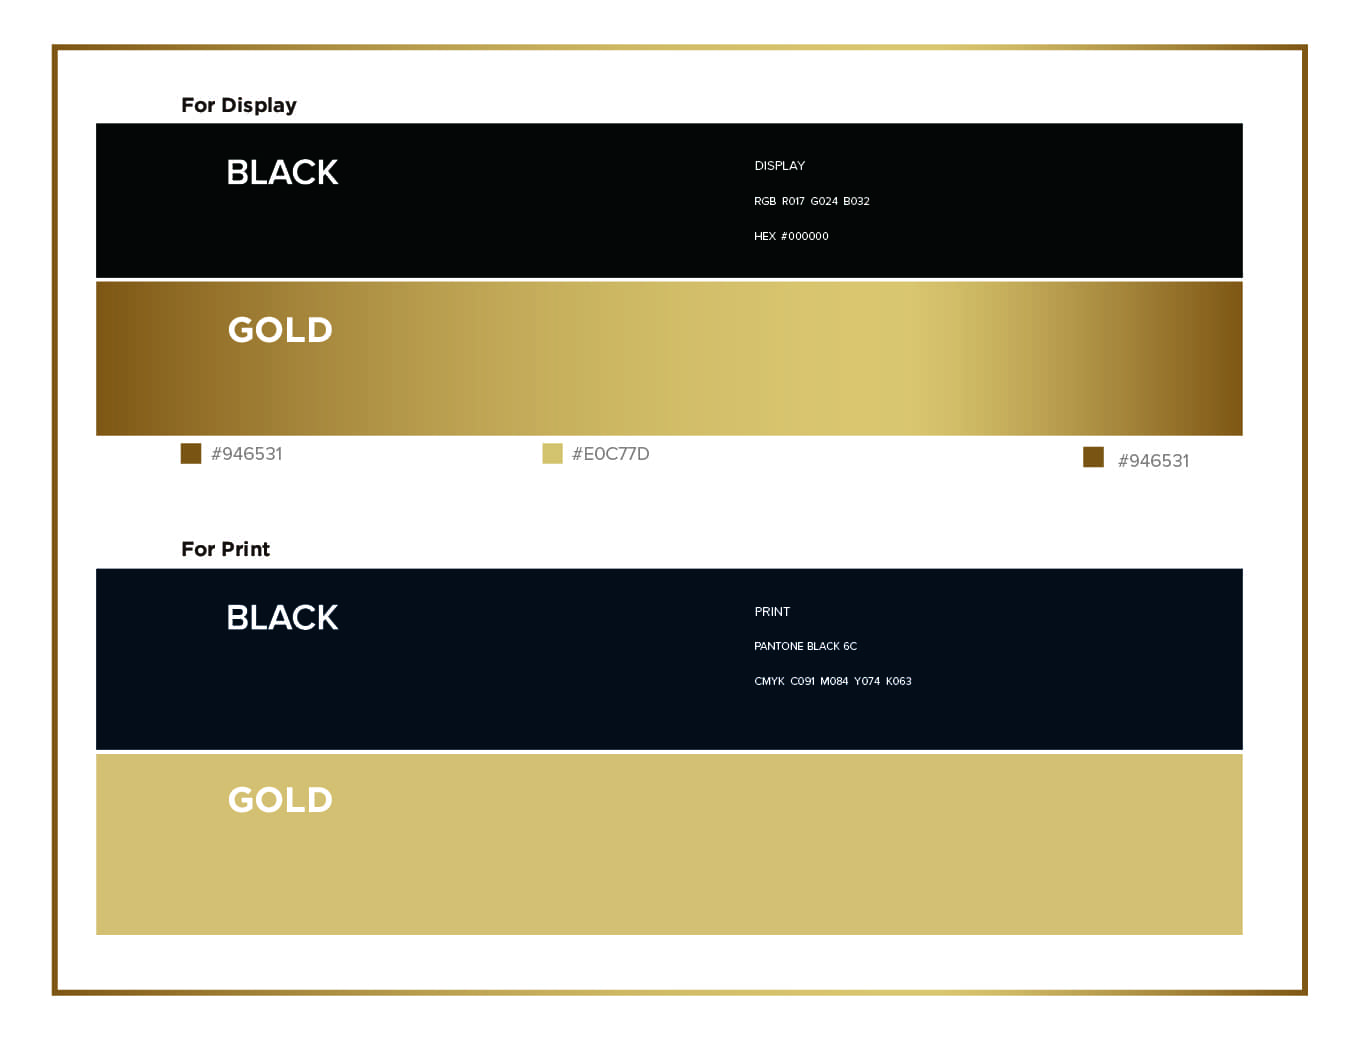 Venti premium women jewellery luxury brand color and typography variations in gold, black, white